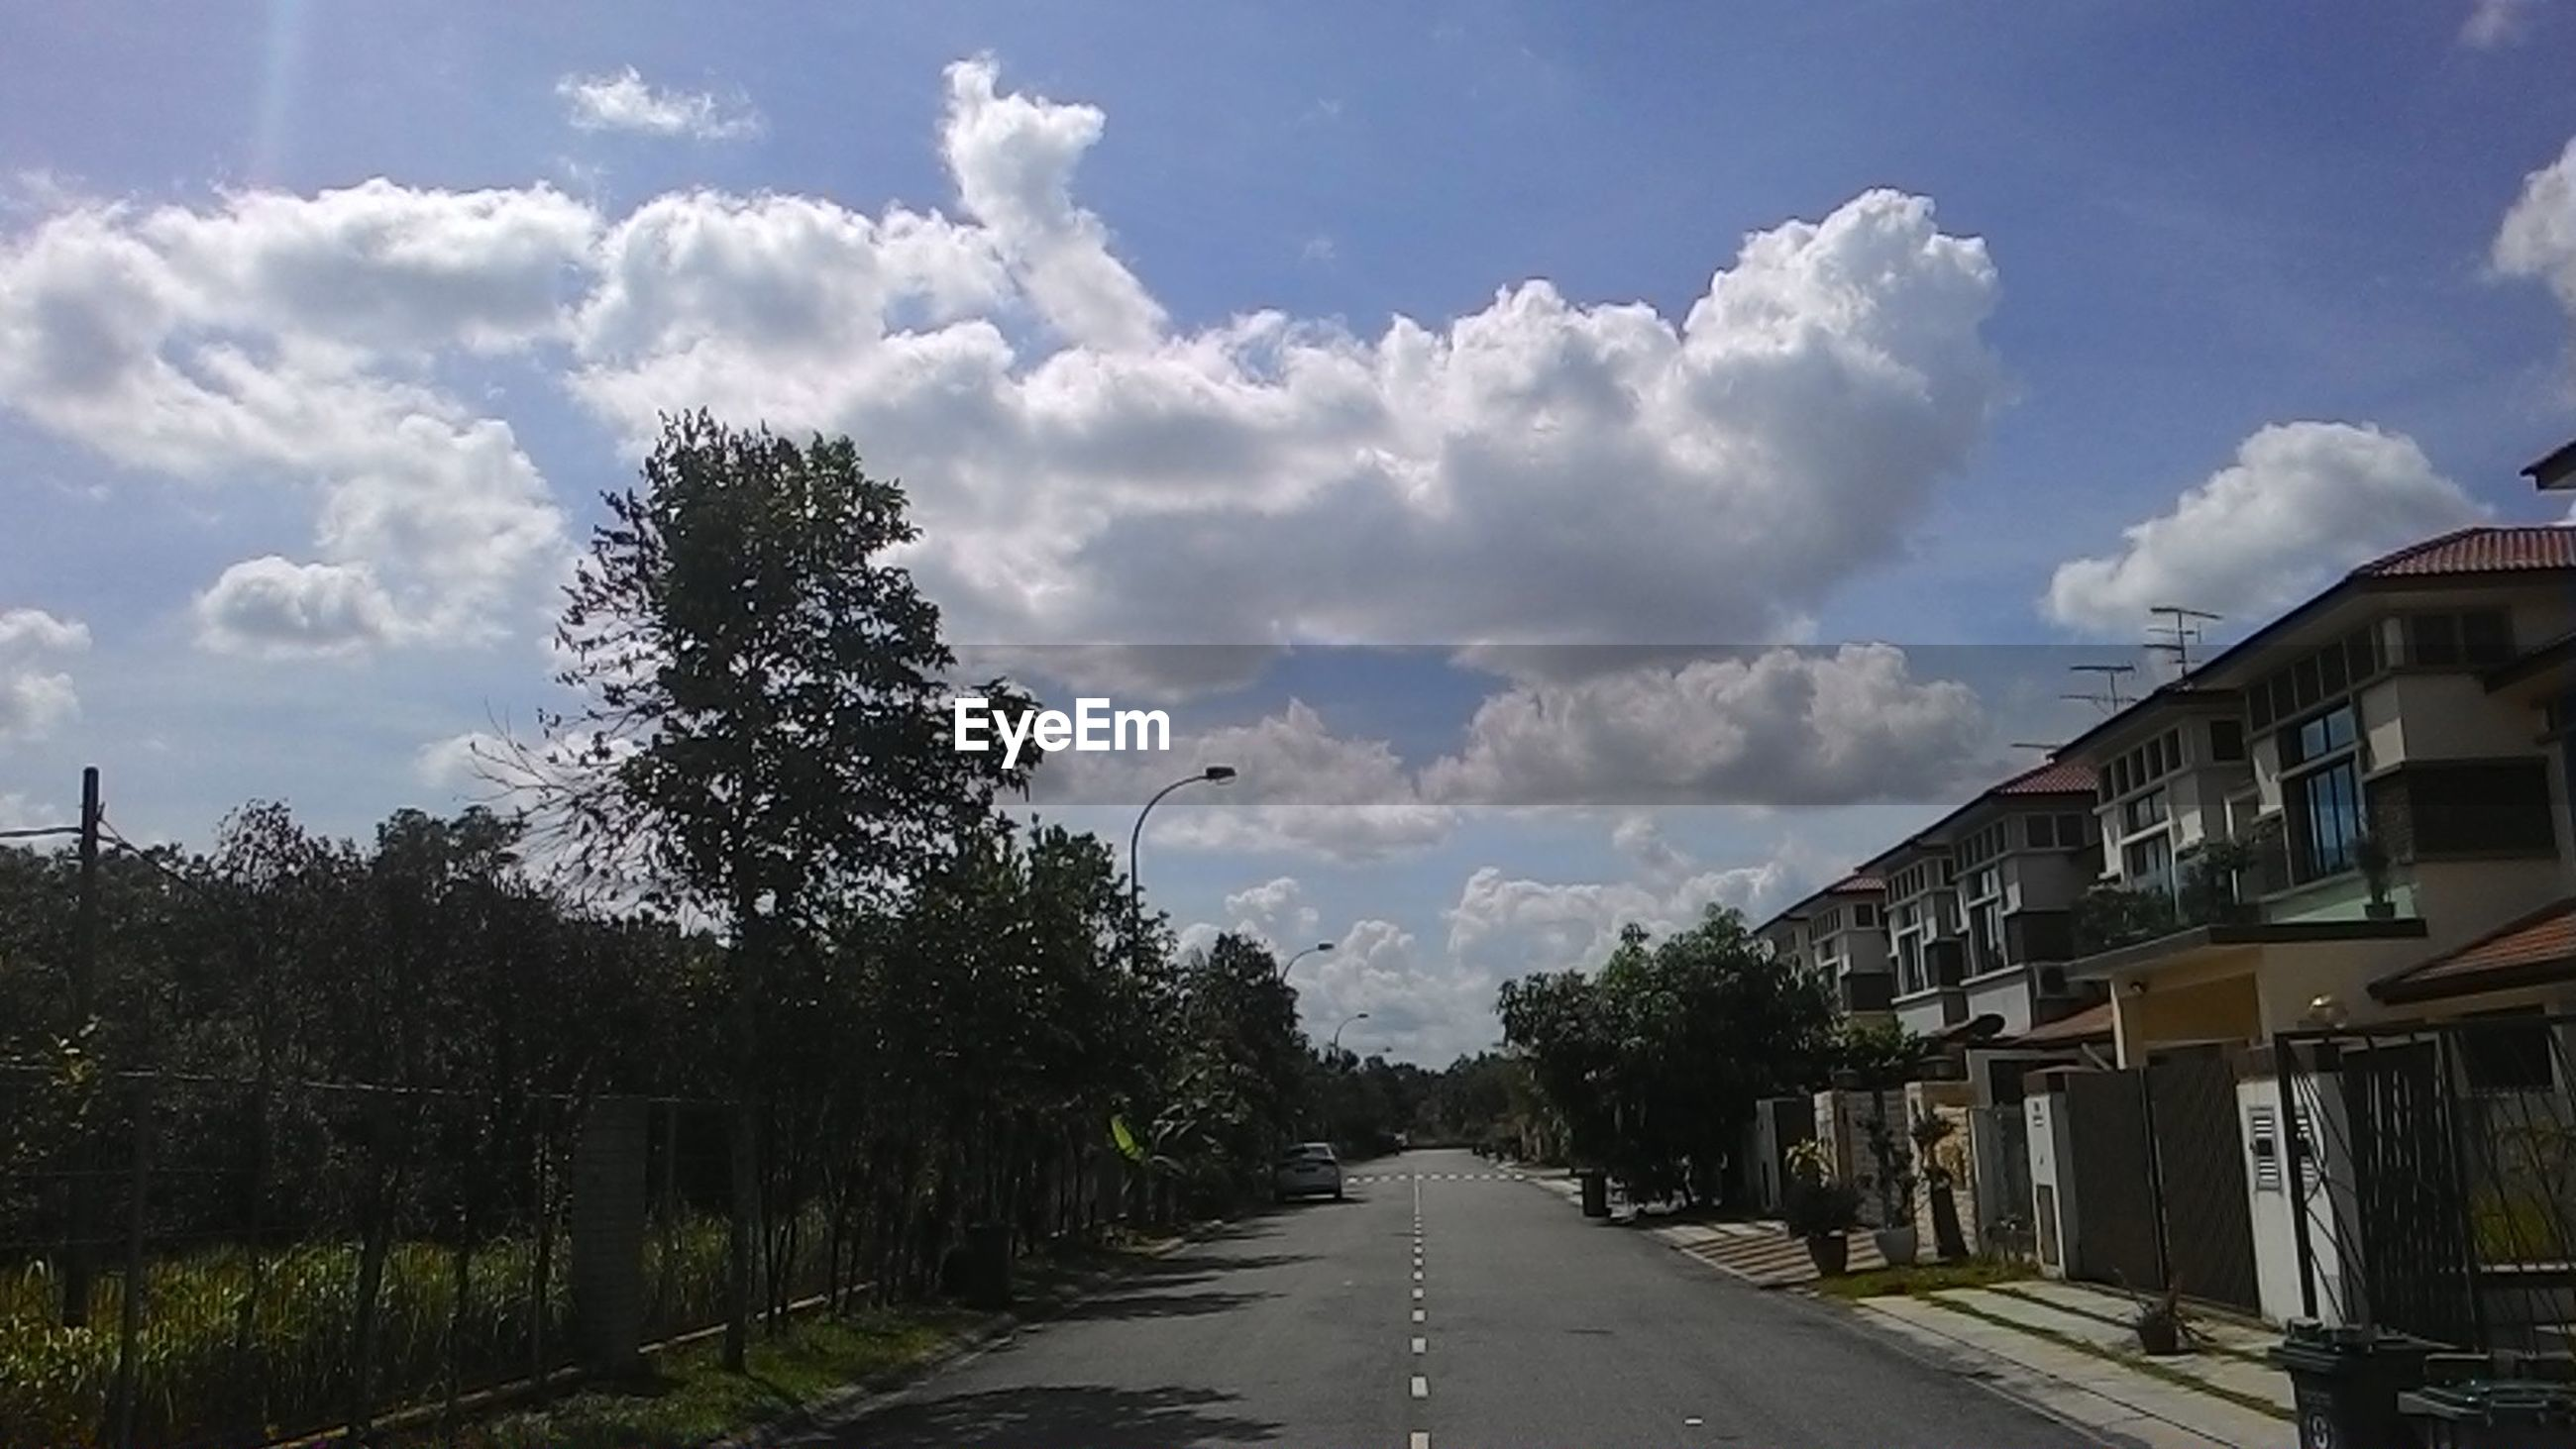 Road by buildings against cloudy sky